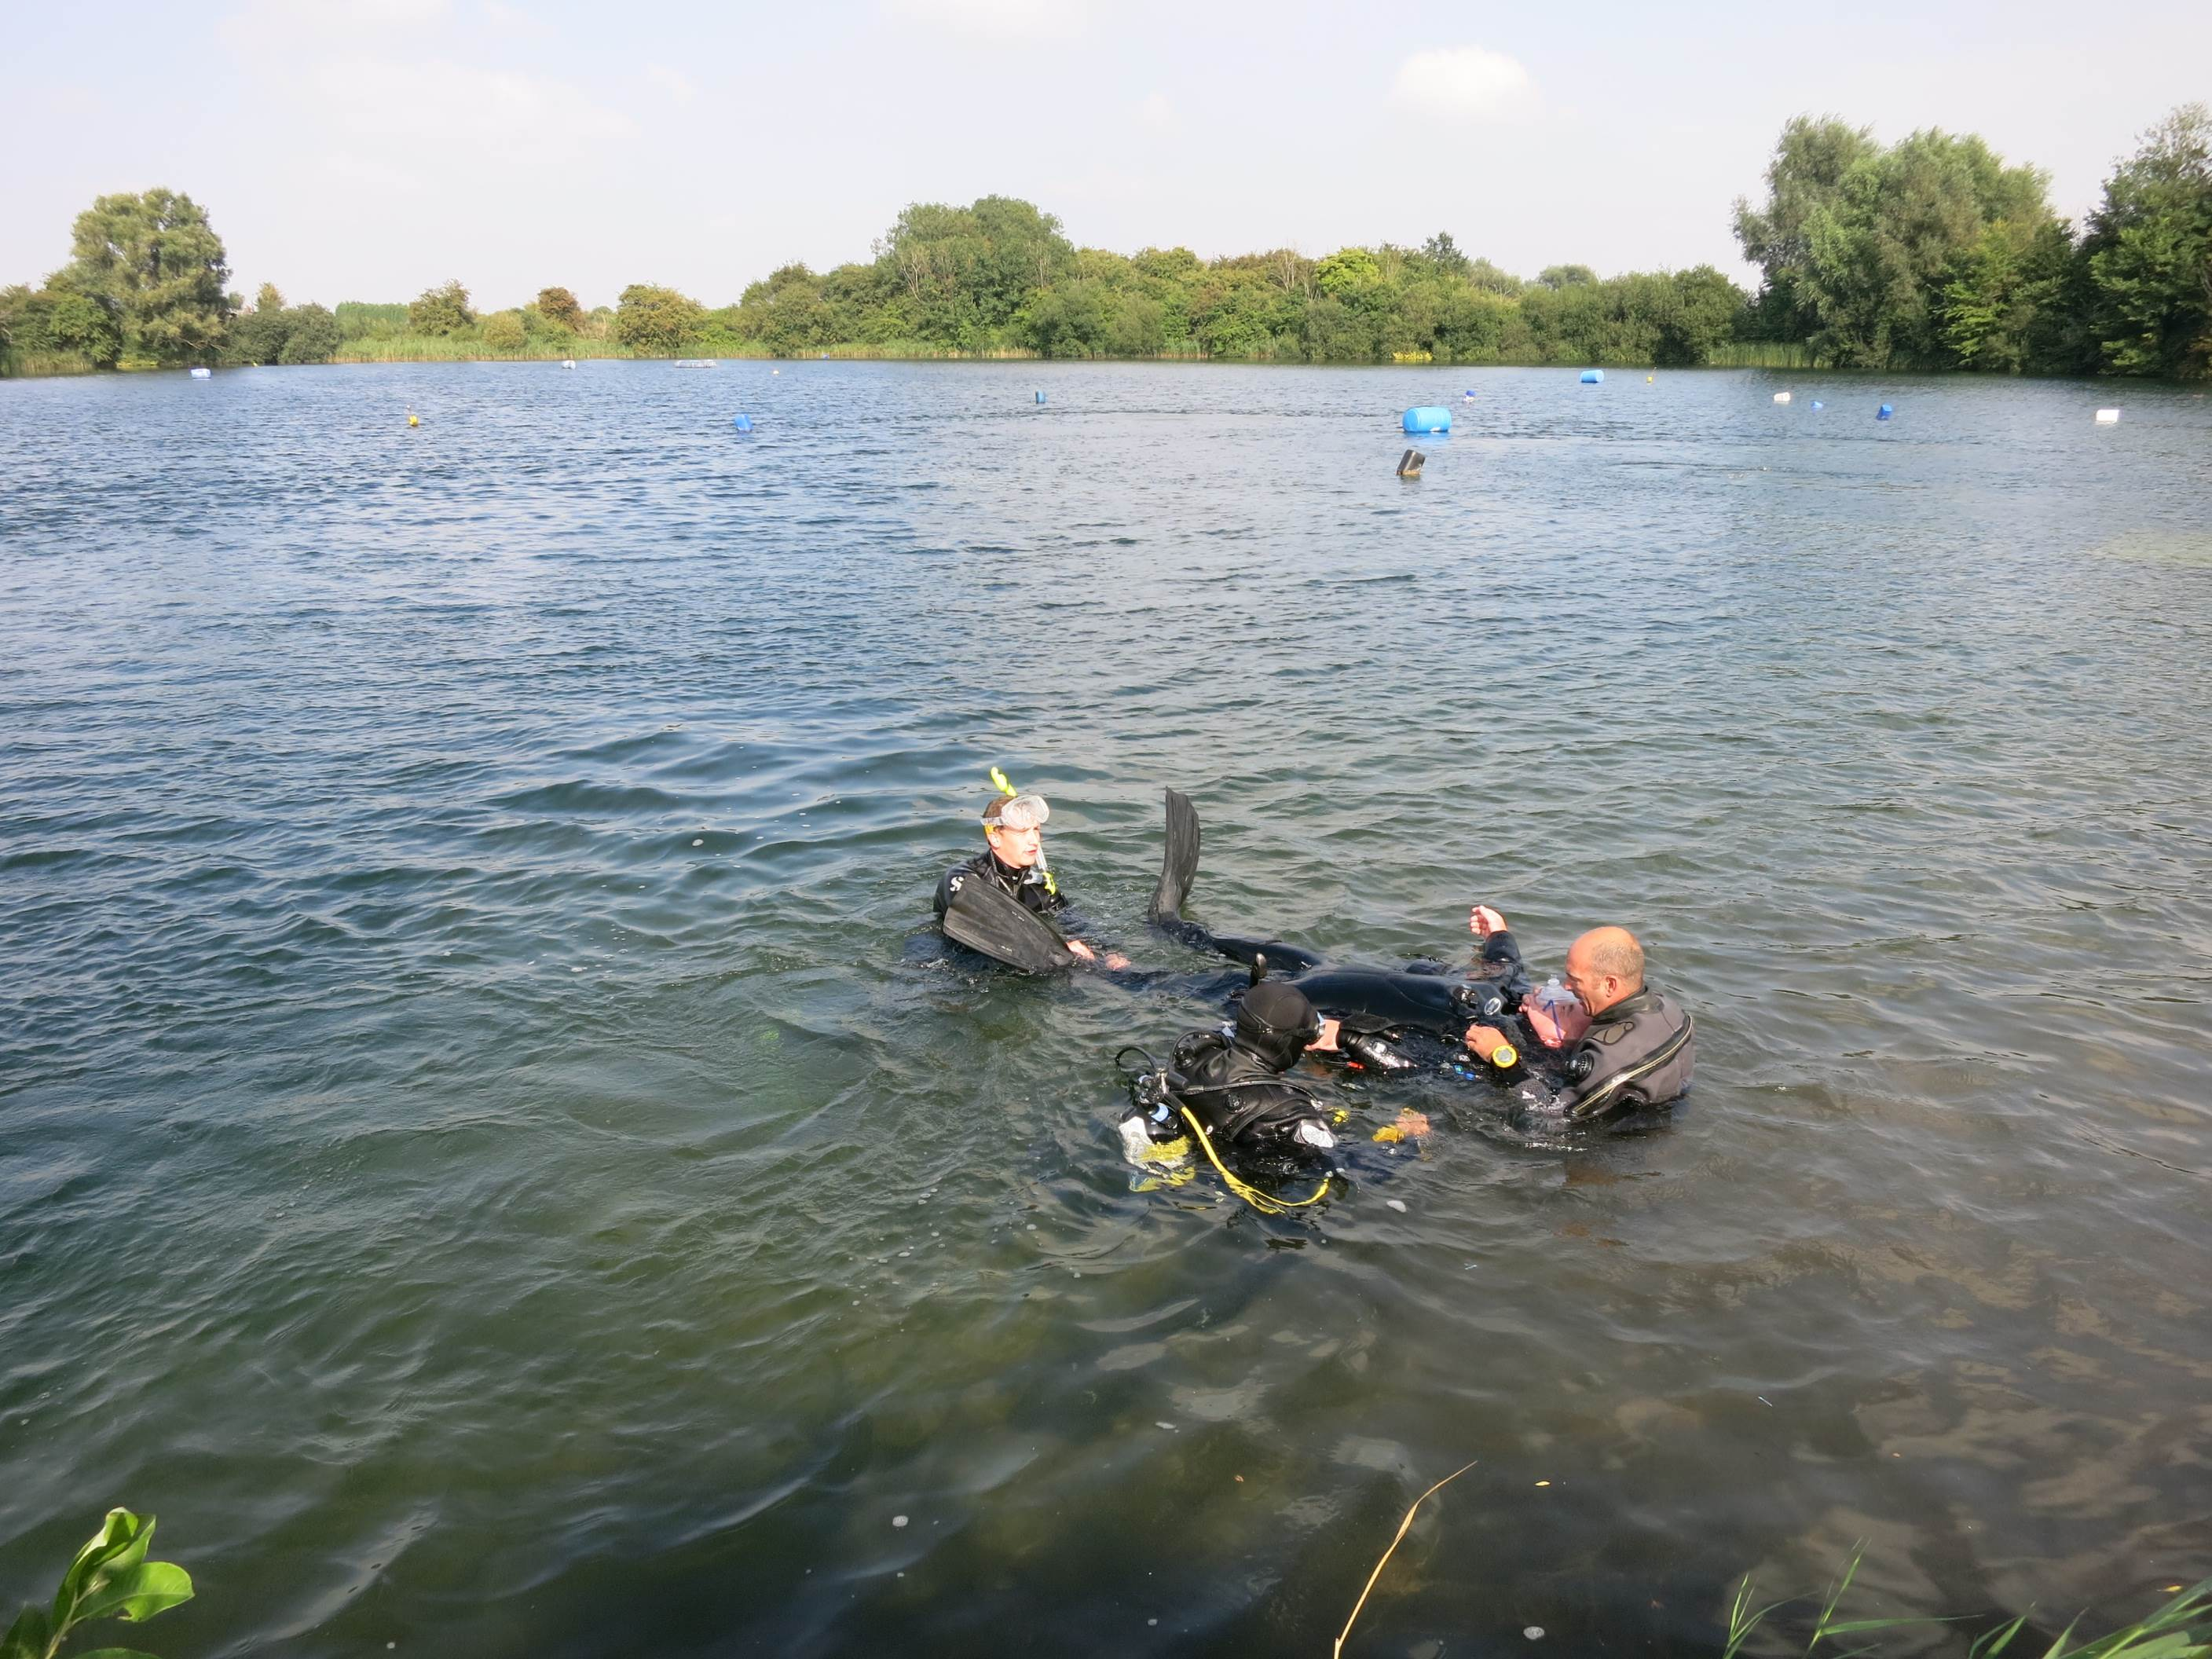 Entry level PADI Open Water Scuba course in Essex